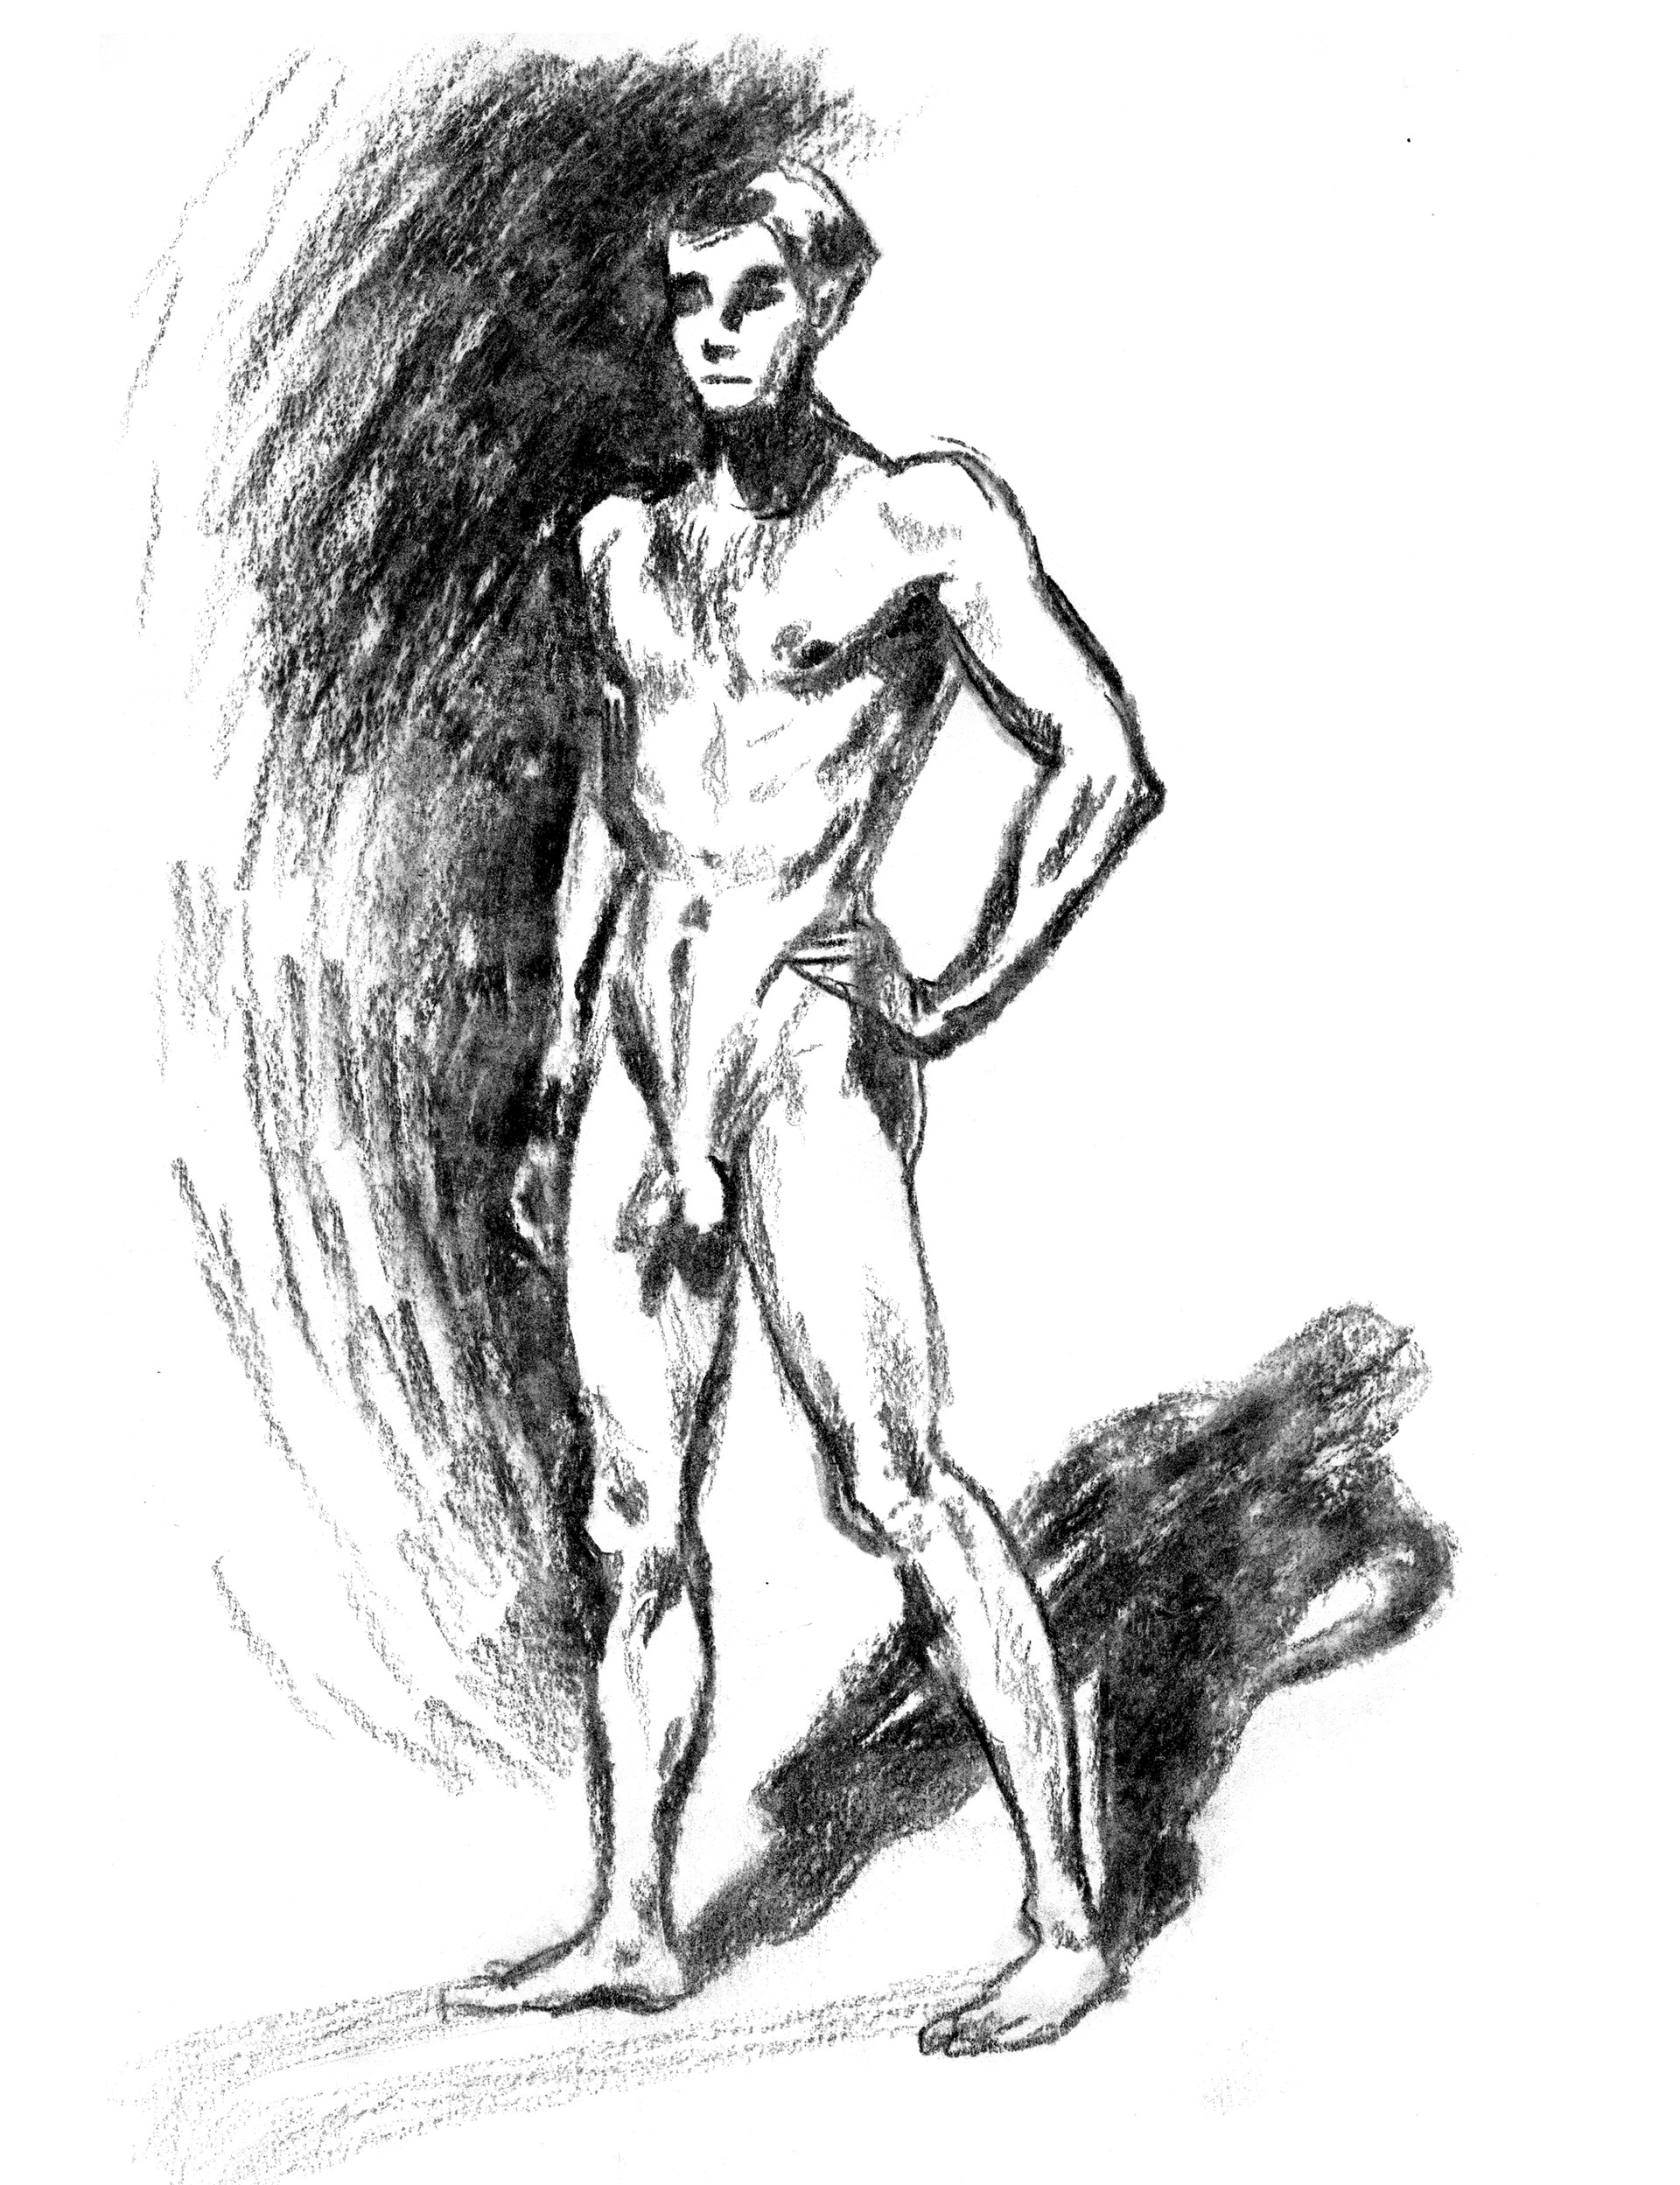 Elisa moriconi 3 06 giugno the boy standing charcoal 01